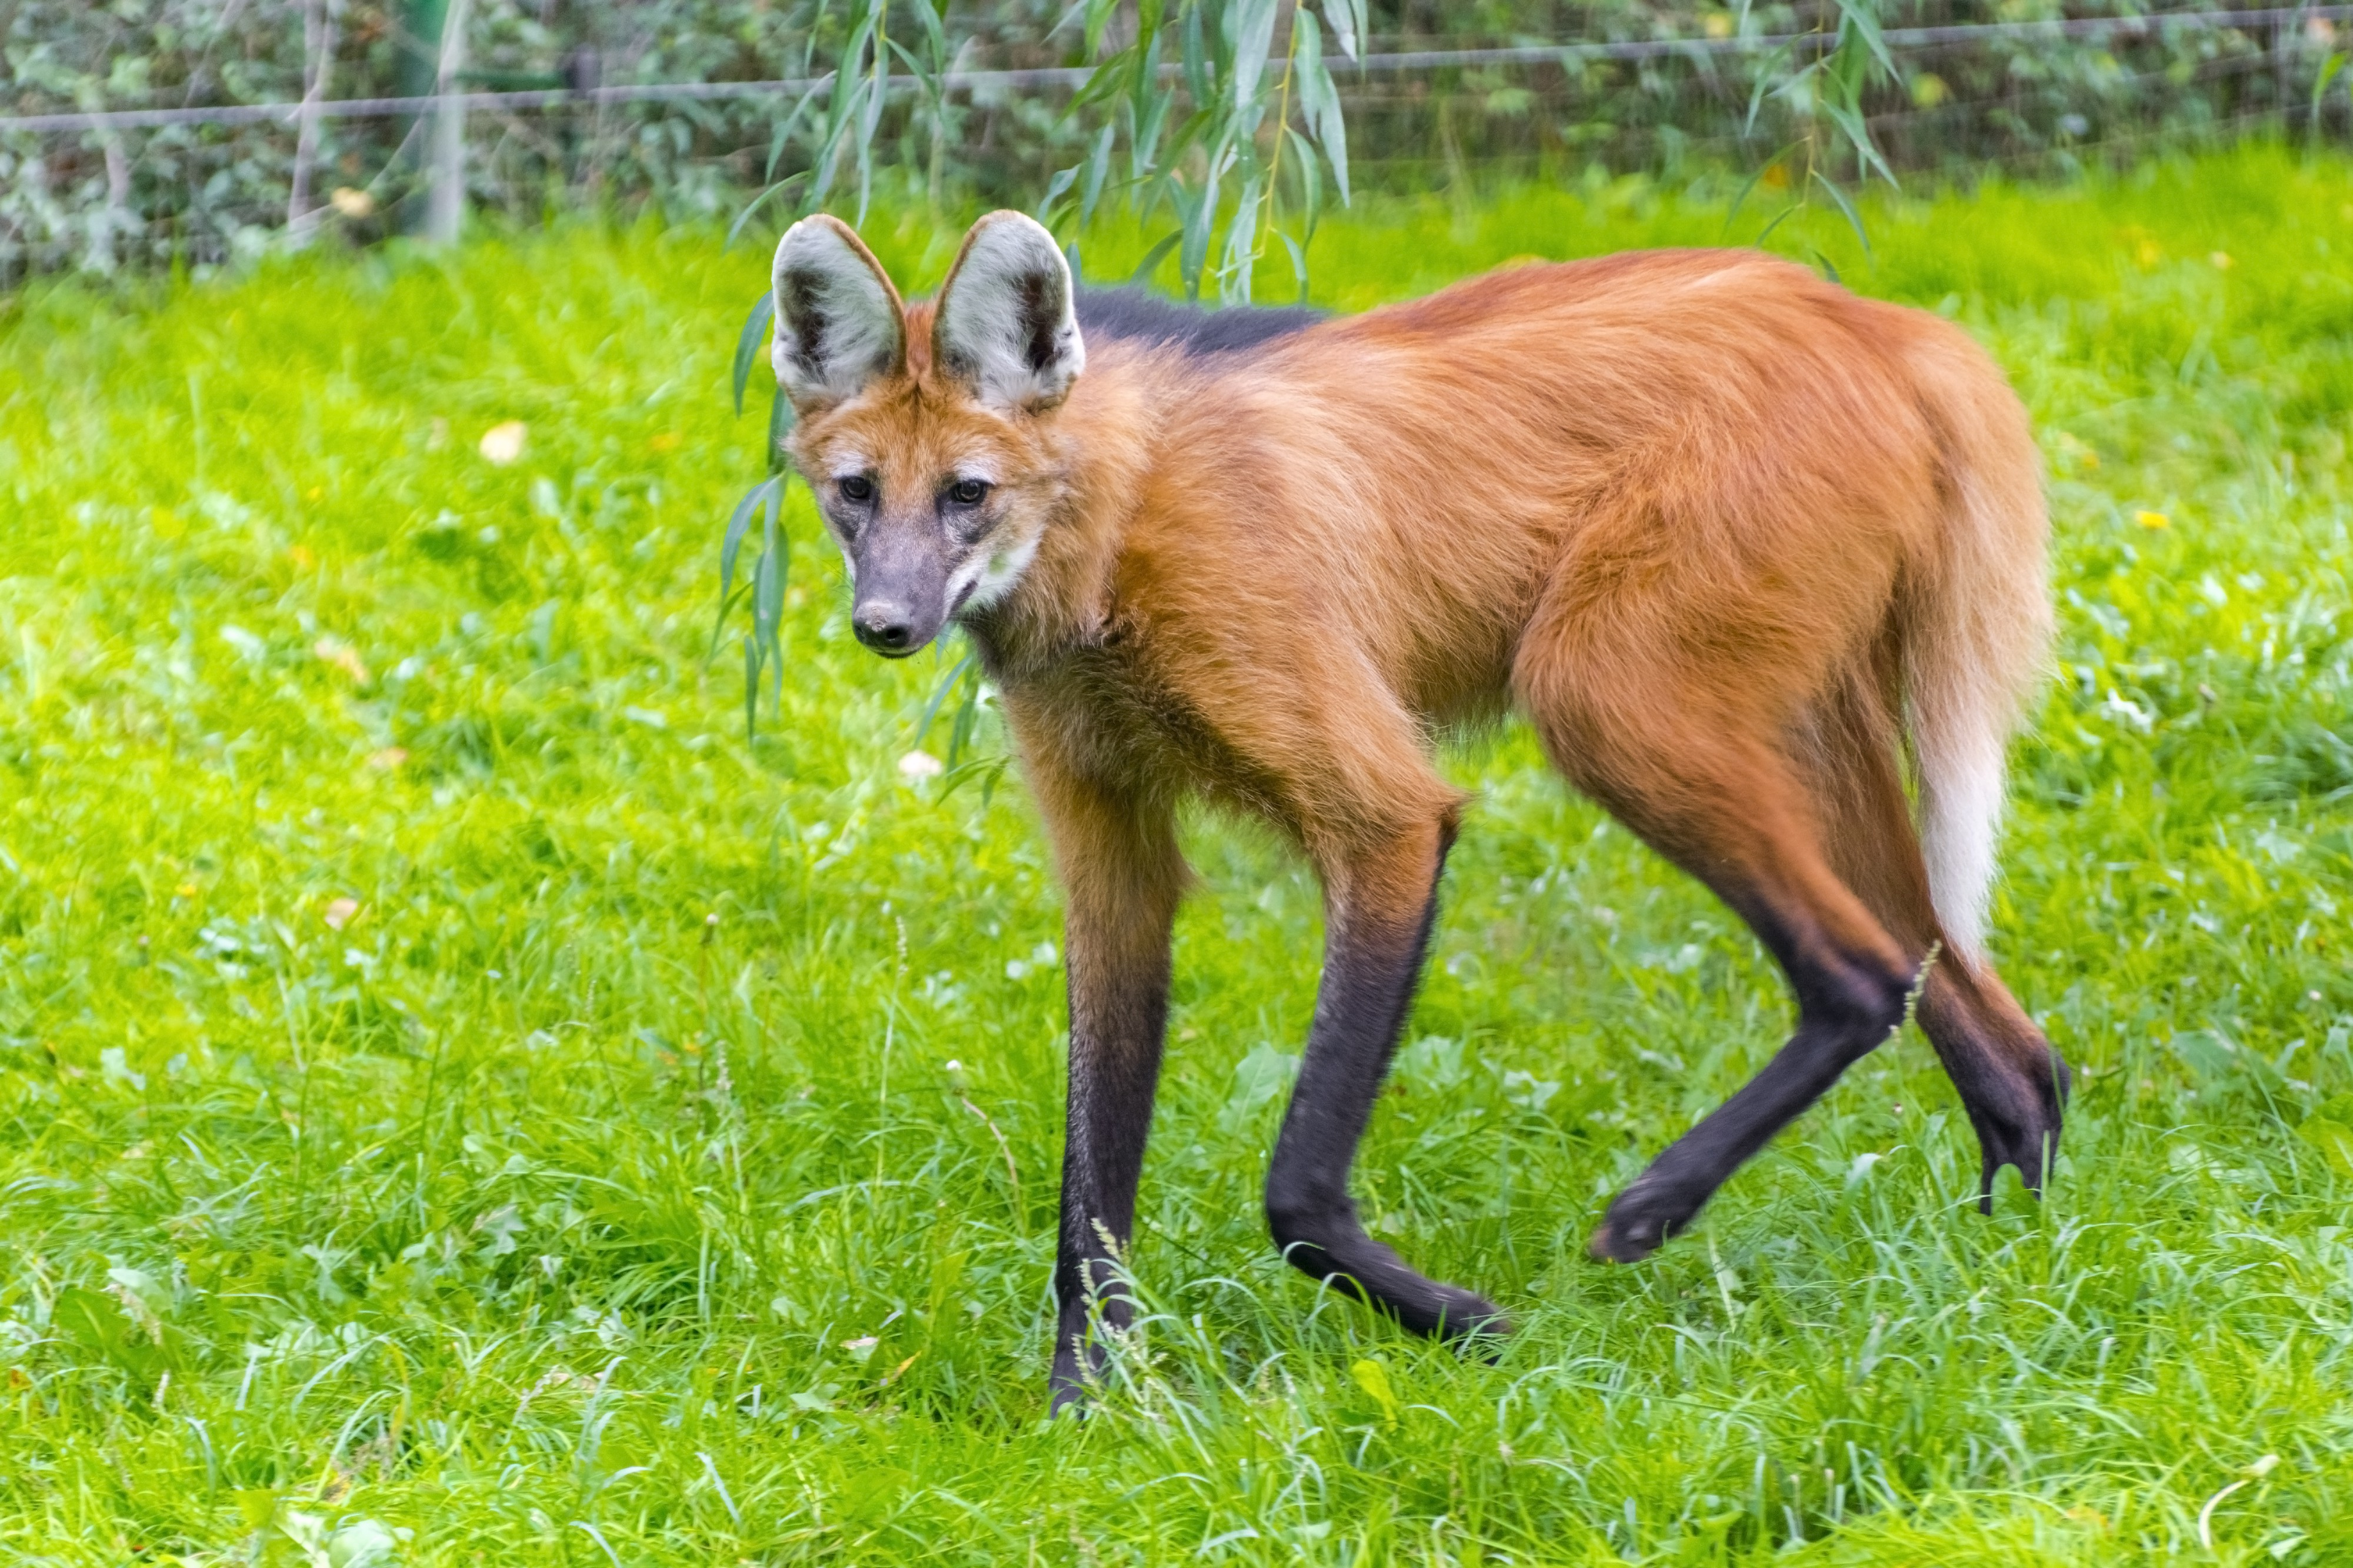 a wild canine with reddish fur and very long, skinny legs that look dipped in black